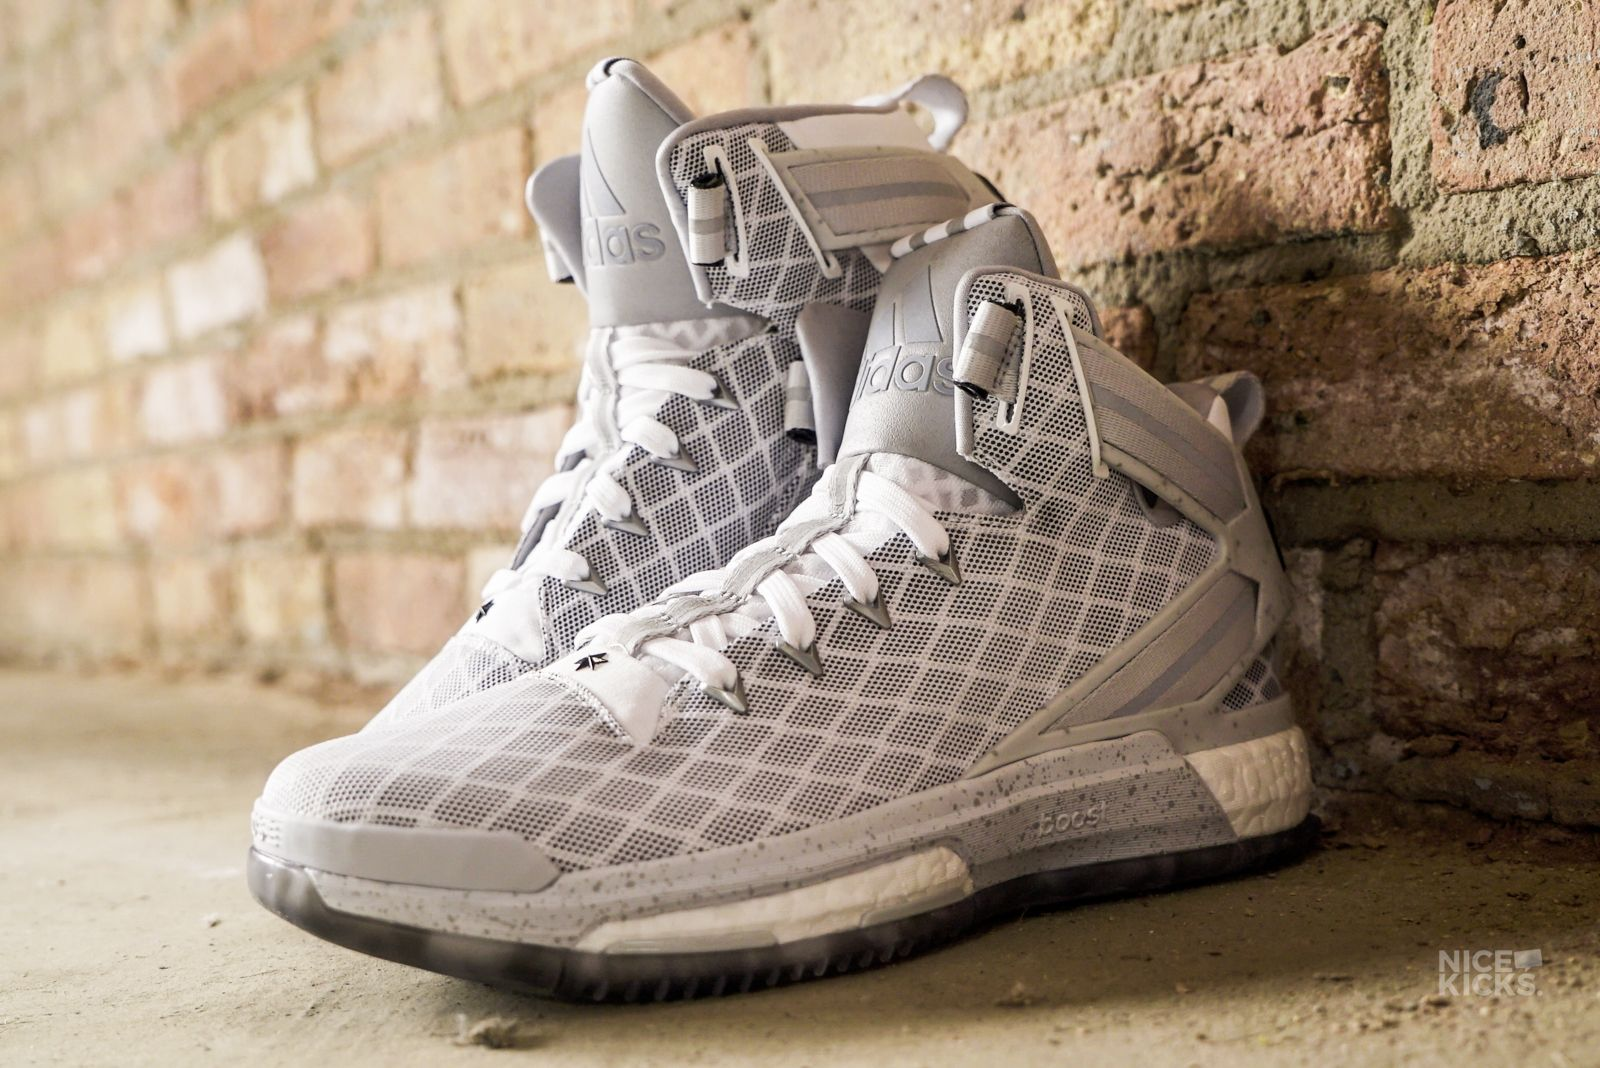 Exclusive // A Detailed Look at the adidas D Rose 6